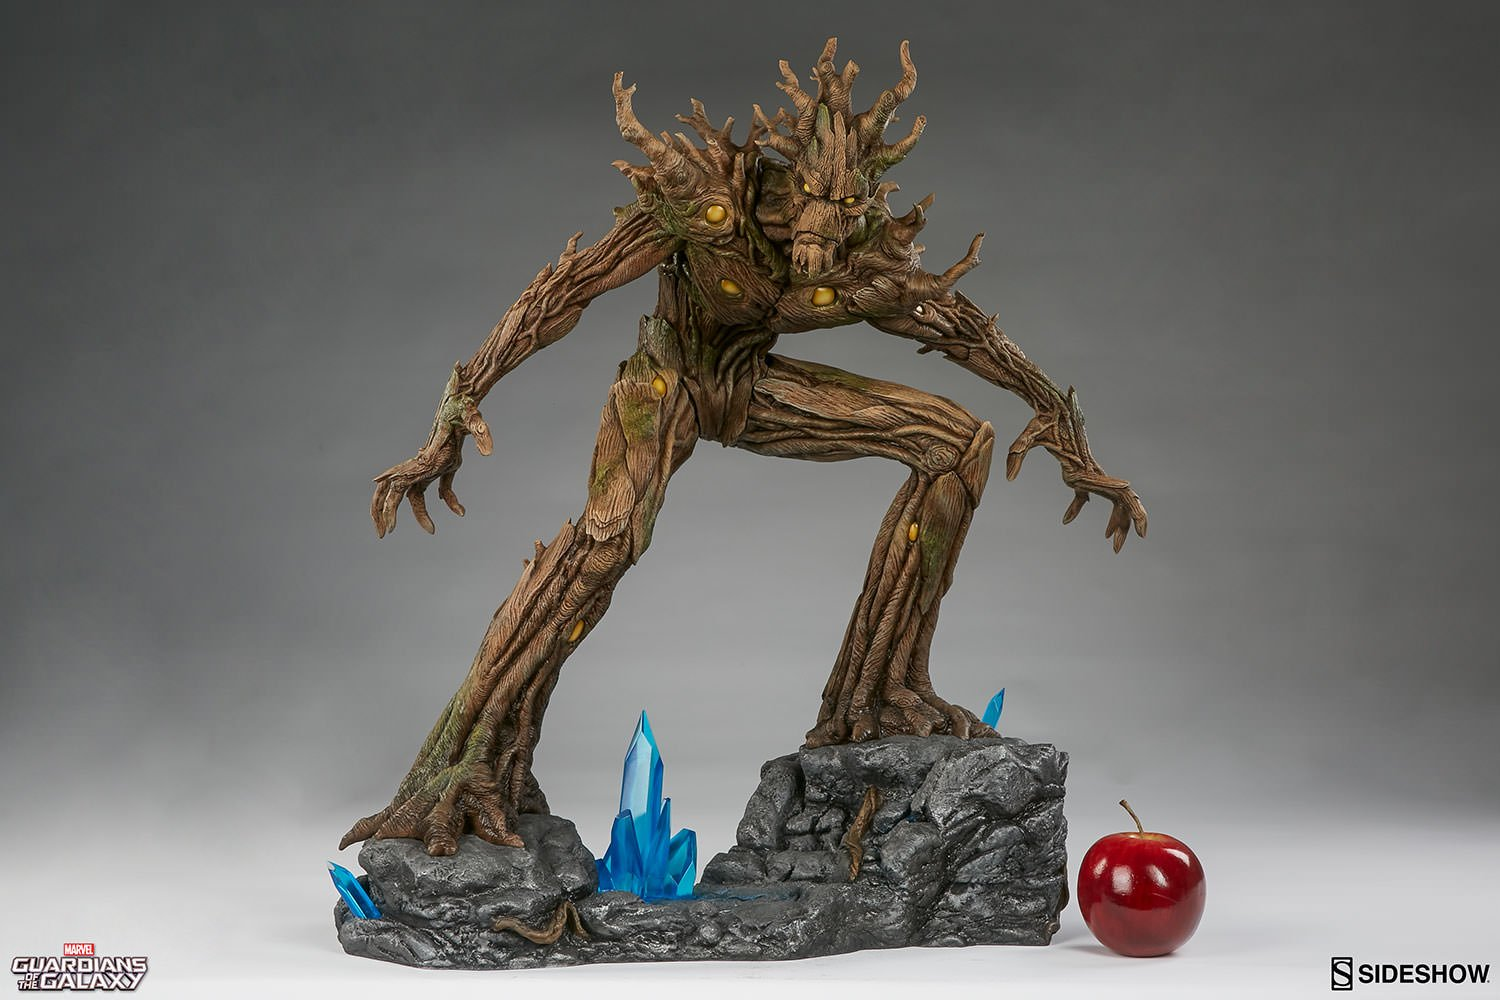 Sideshow SS300501 Collectibles - Figura de Groot